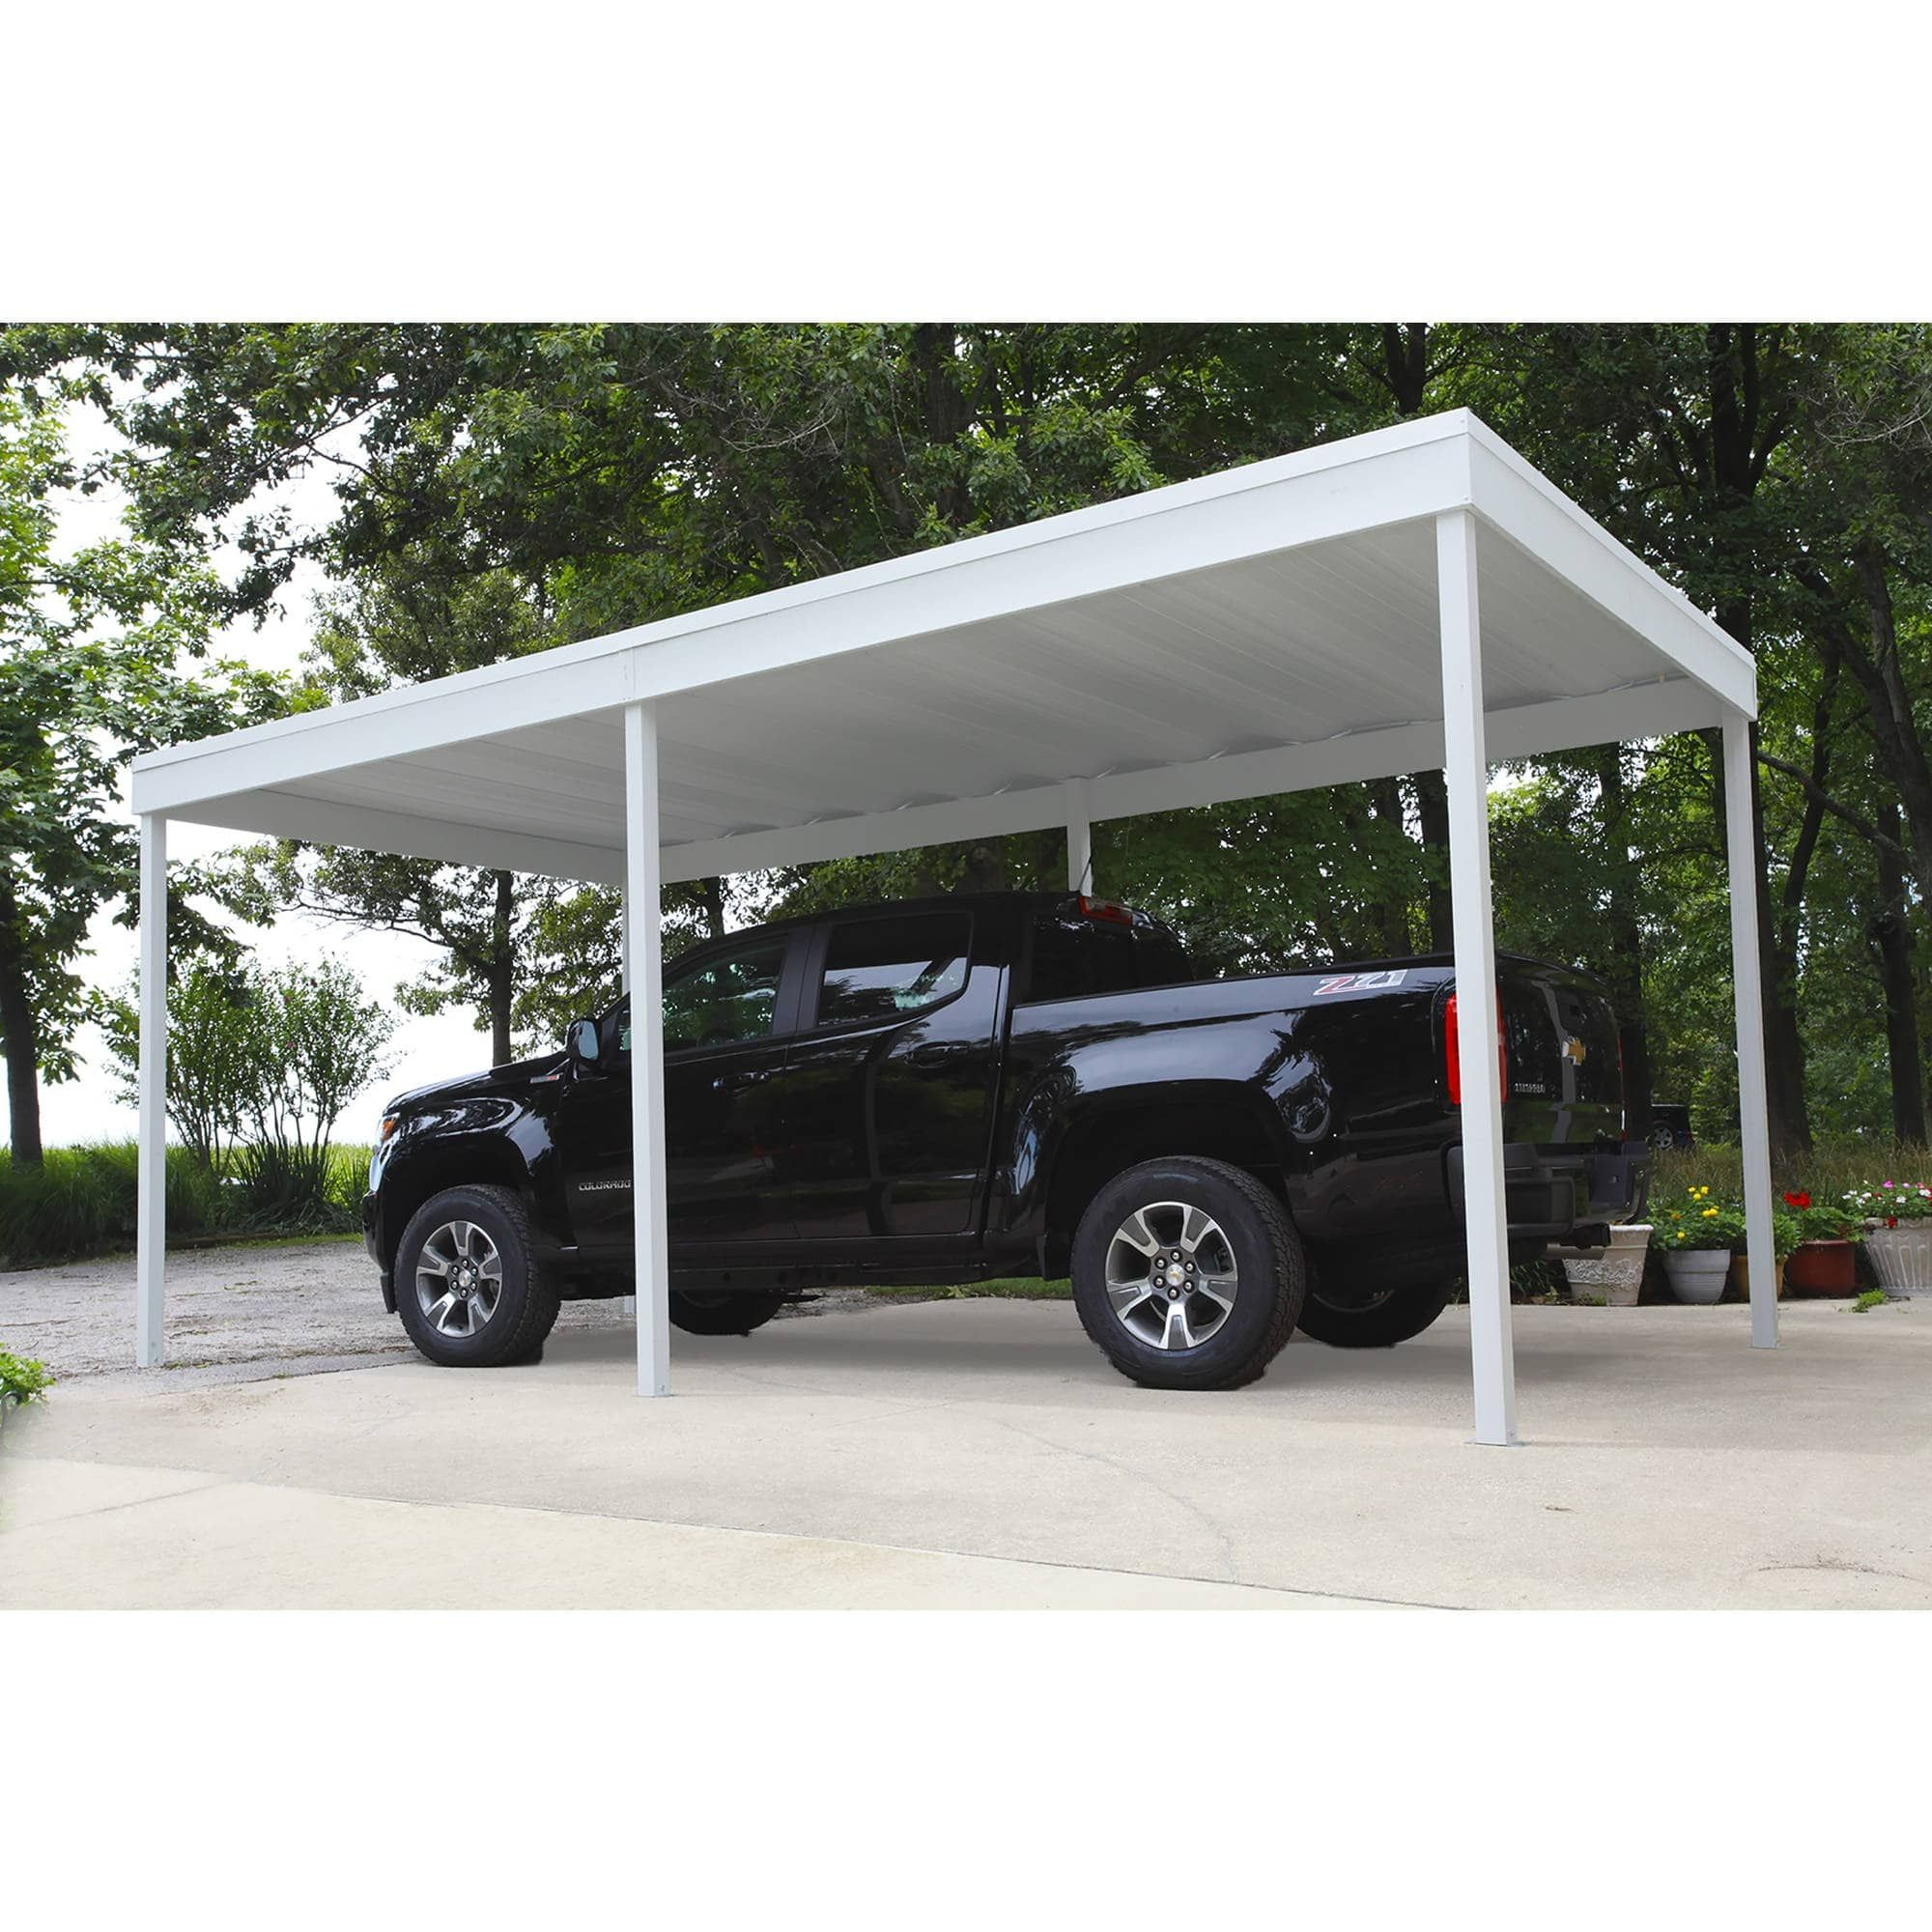 Arrow Shed Free Standing Car Port, 10' Wide x 10' Long